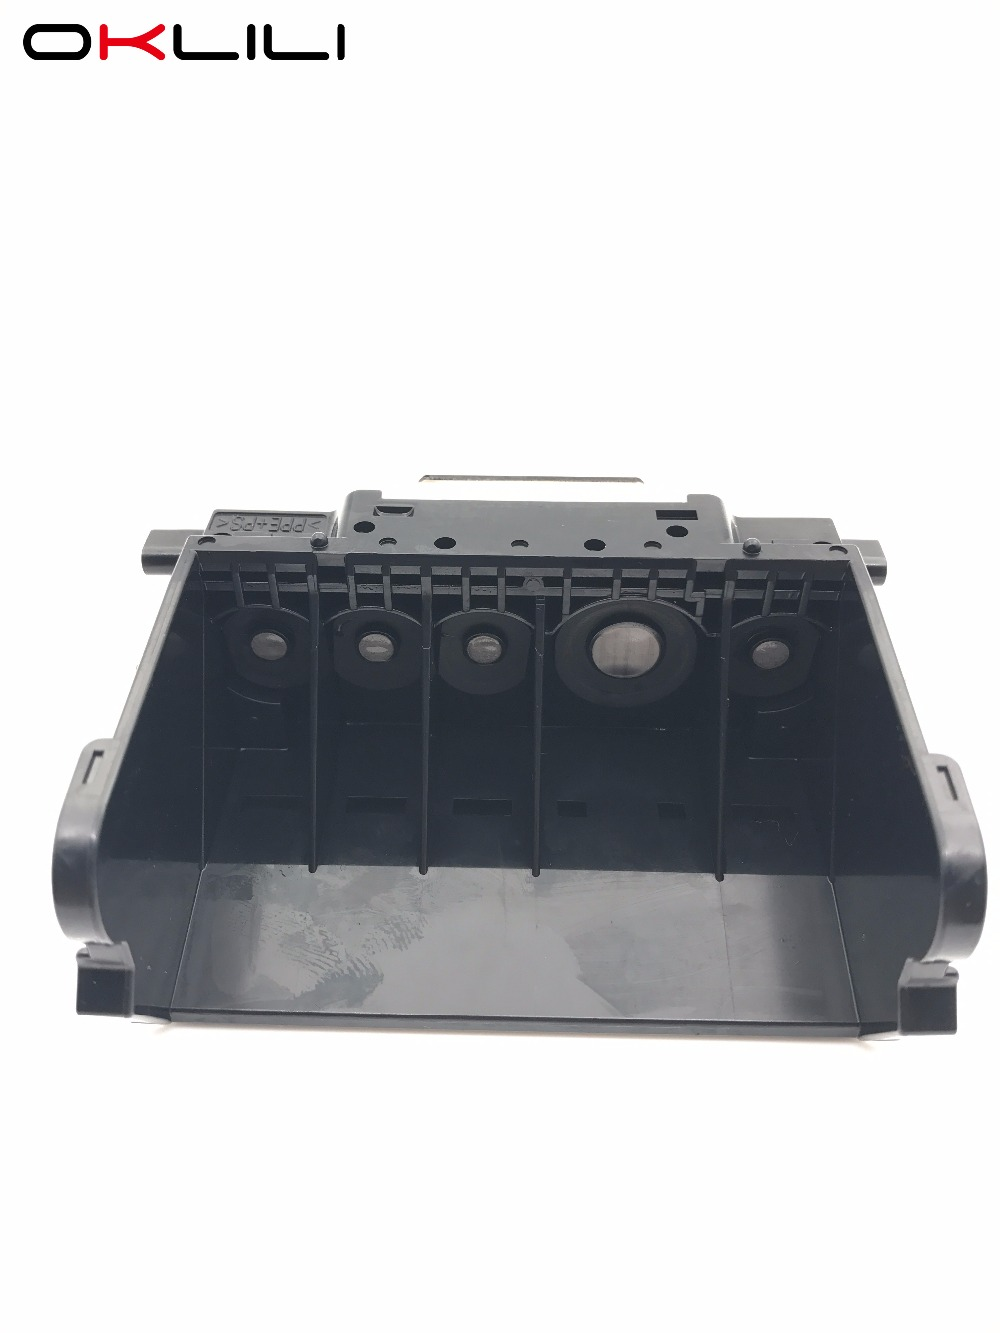 OKLILI ORIGINAL QY6-0075 QY6-0075-000 Printhead Print Head Printer Head for Canon iP5300 MP810 iP4500 MP610 MX850 gopro achmj 301 jr chesty chest harness